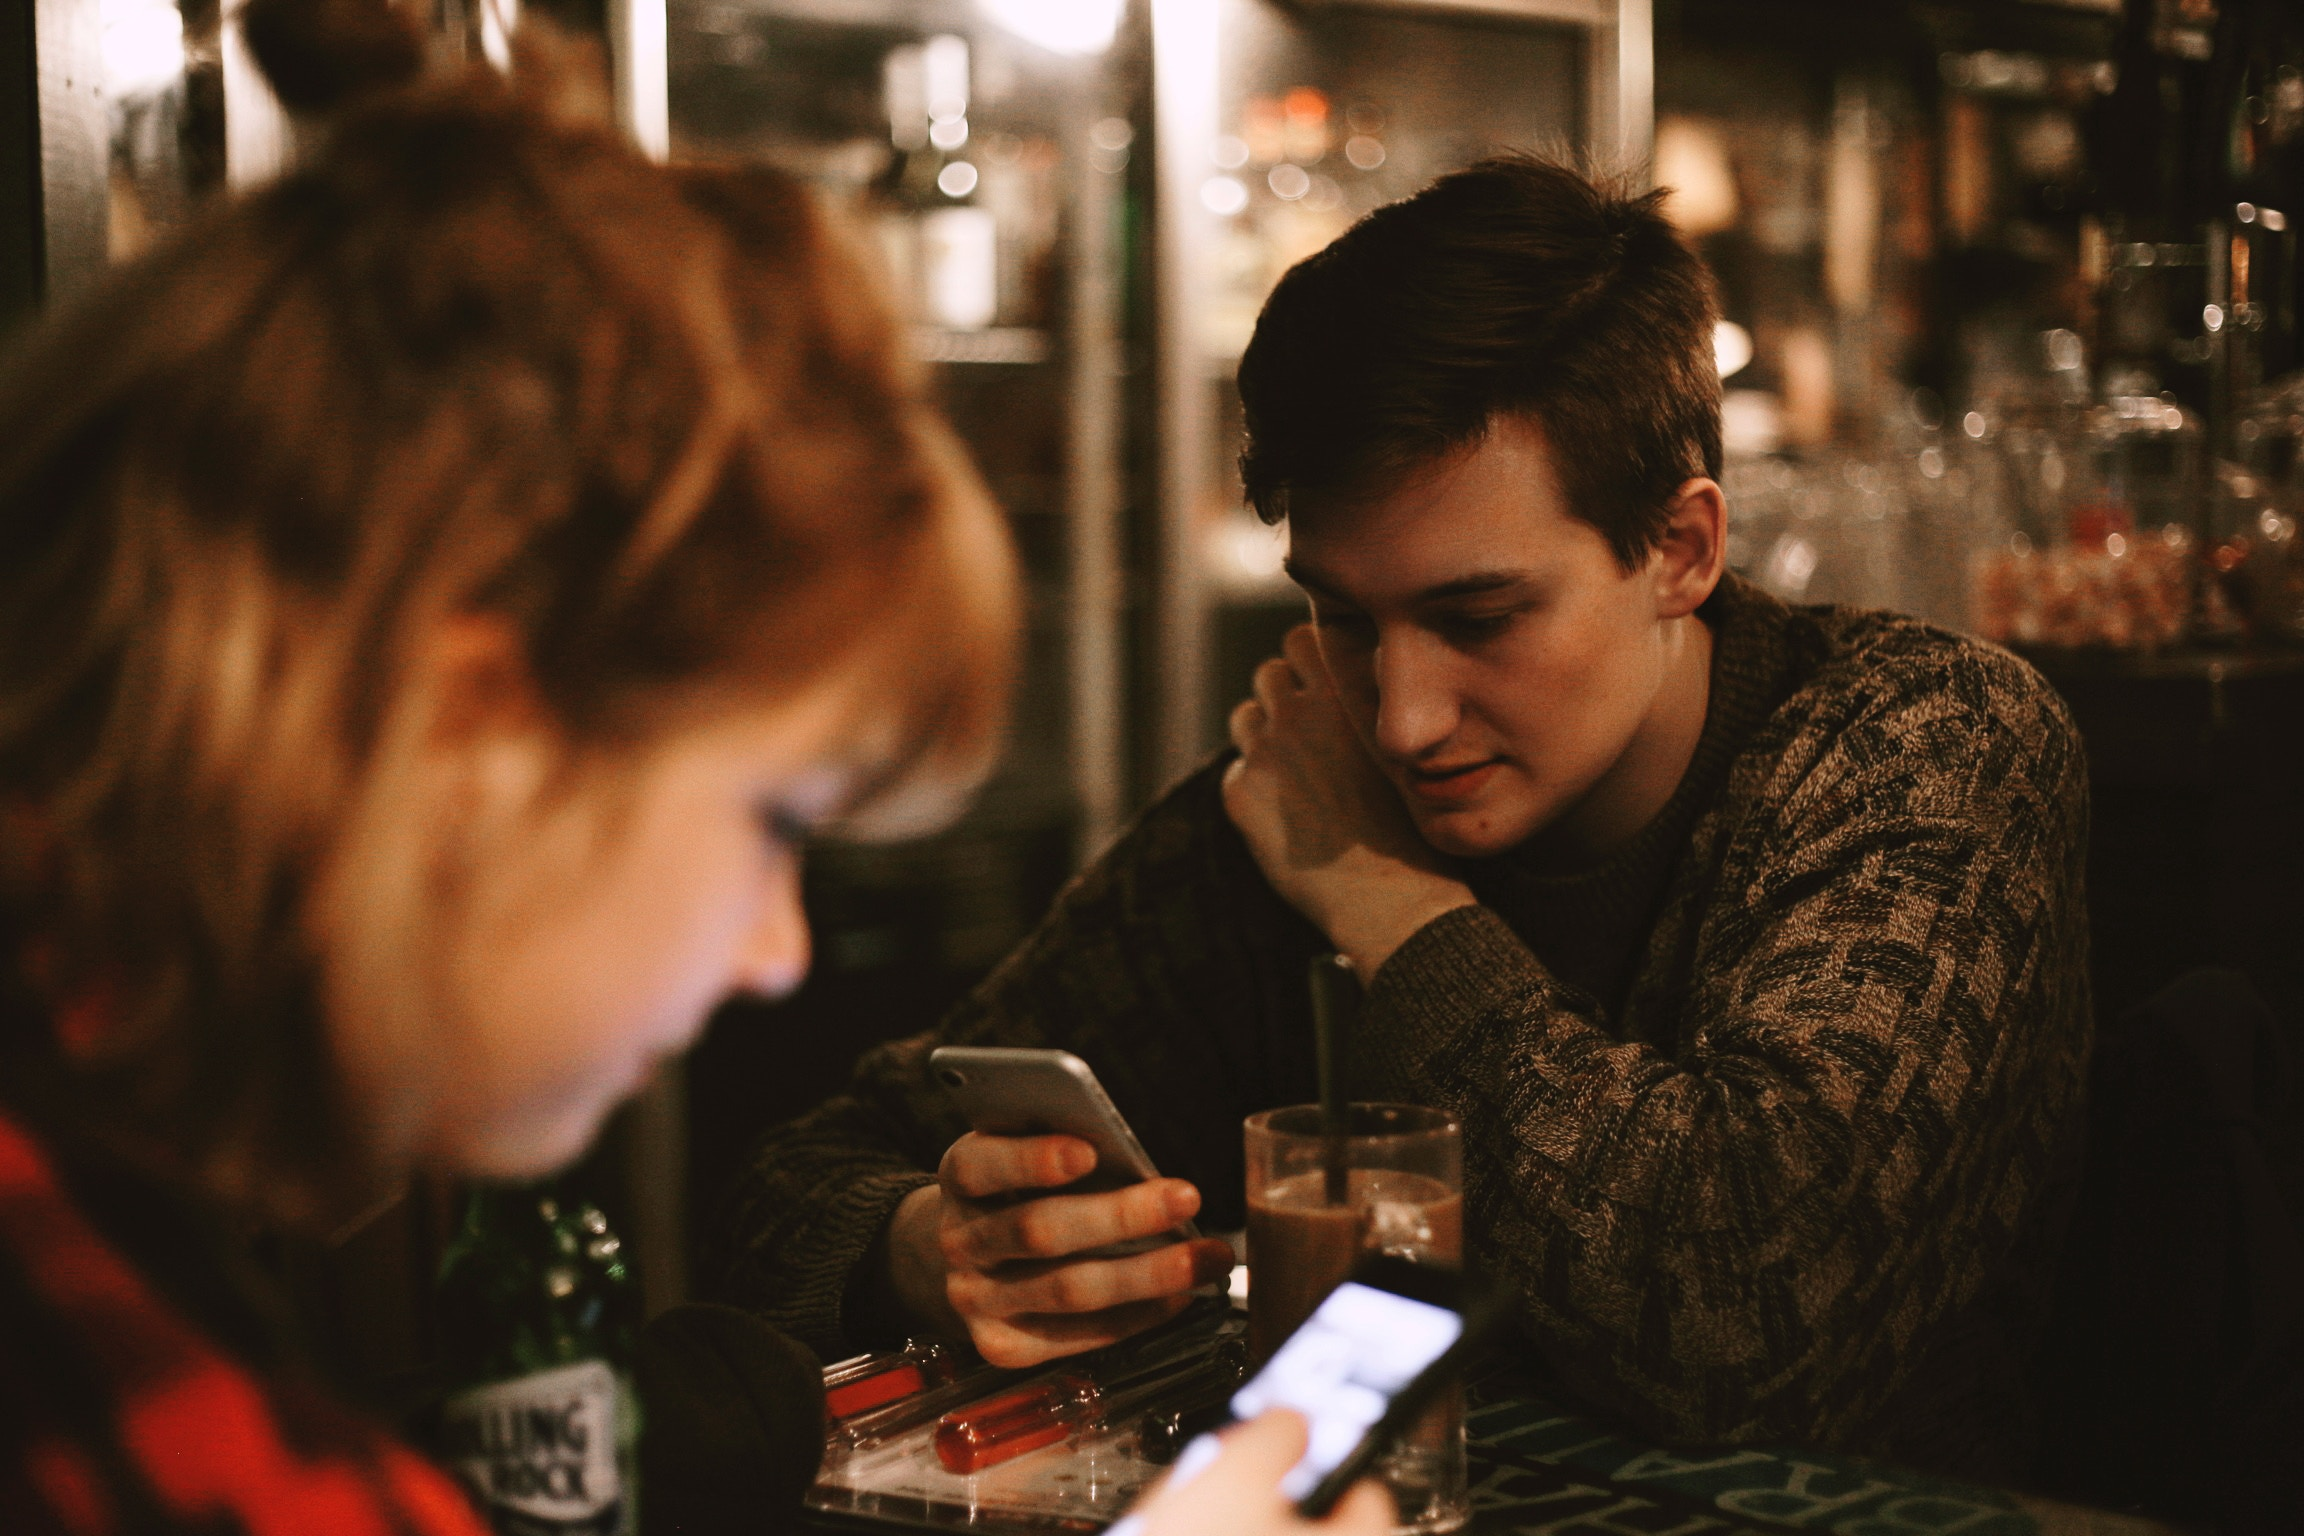 Are Smartphones Killing Our Creativity? | Polite On Society